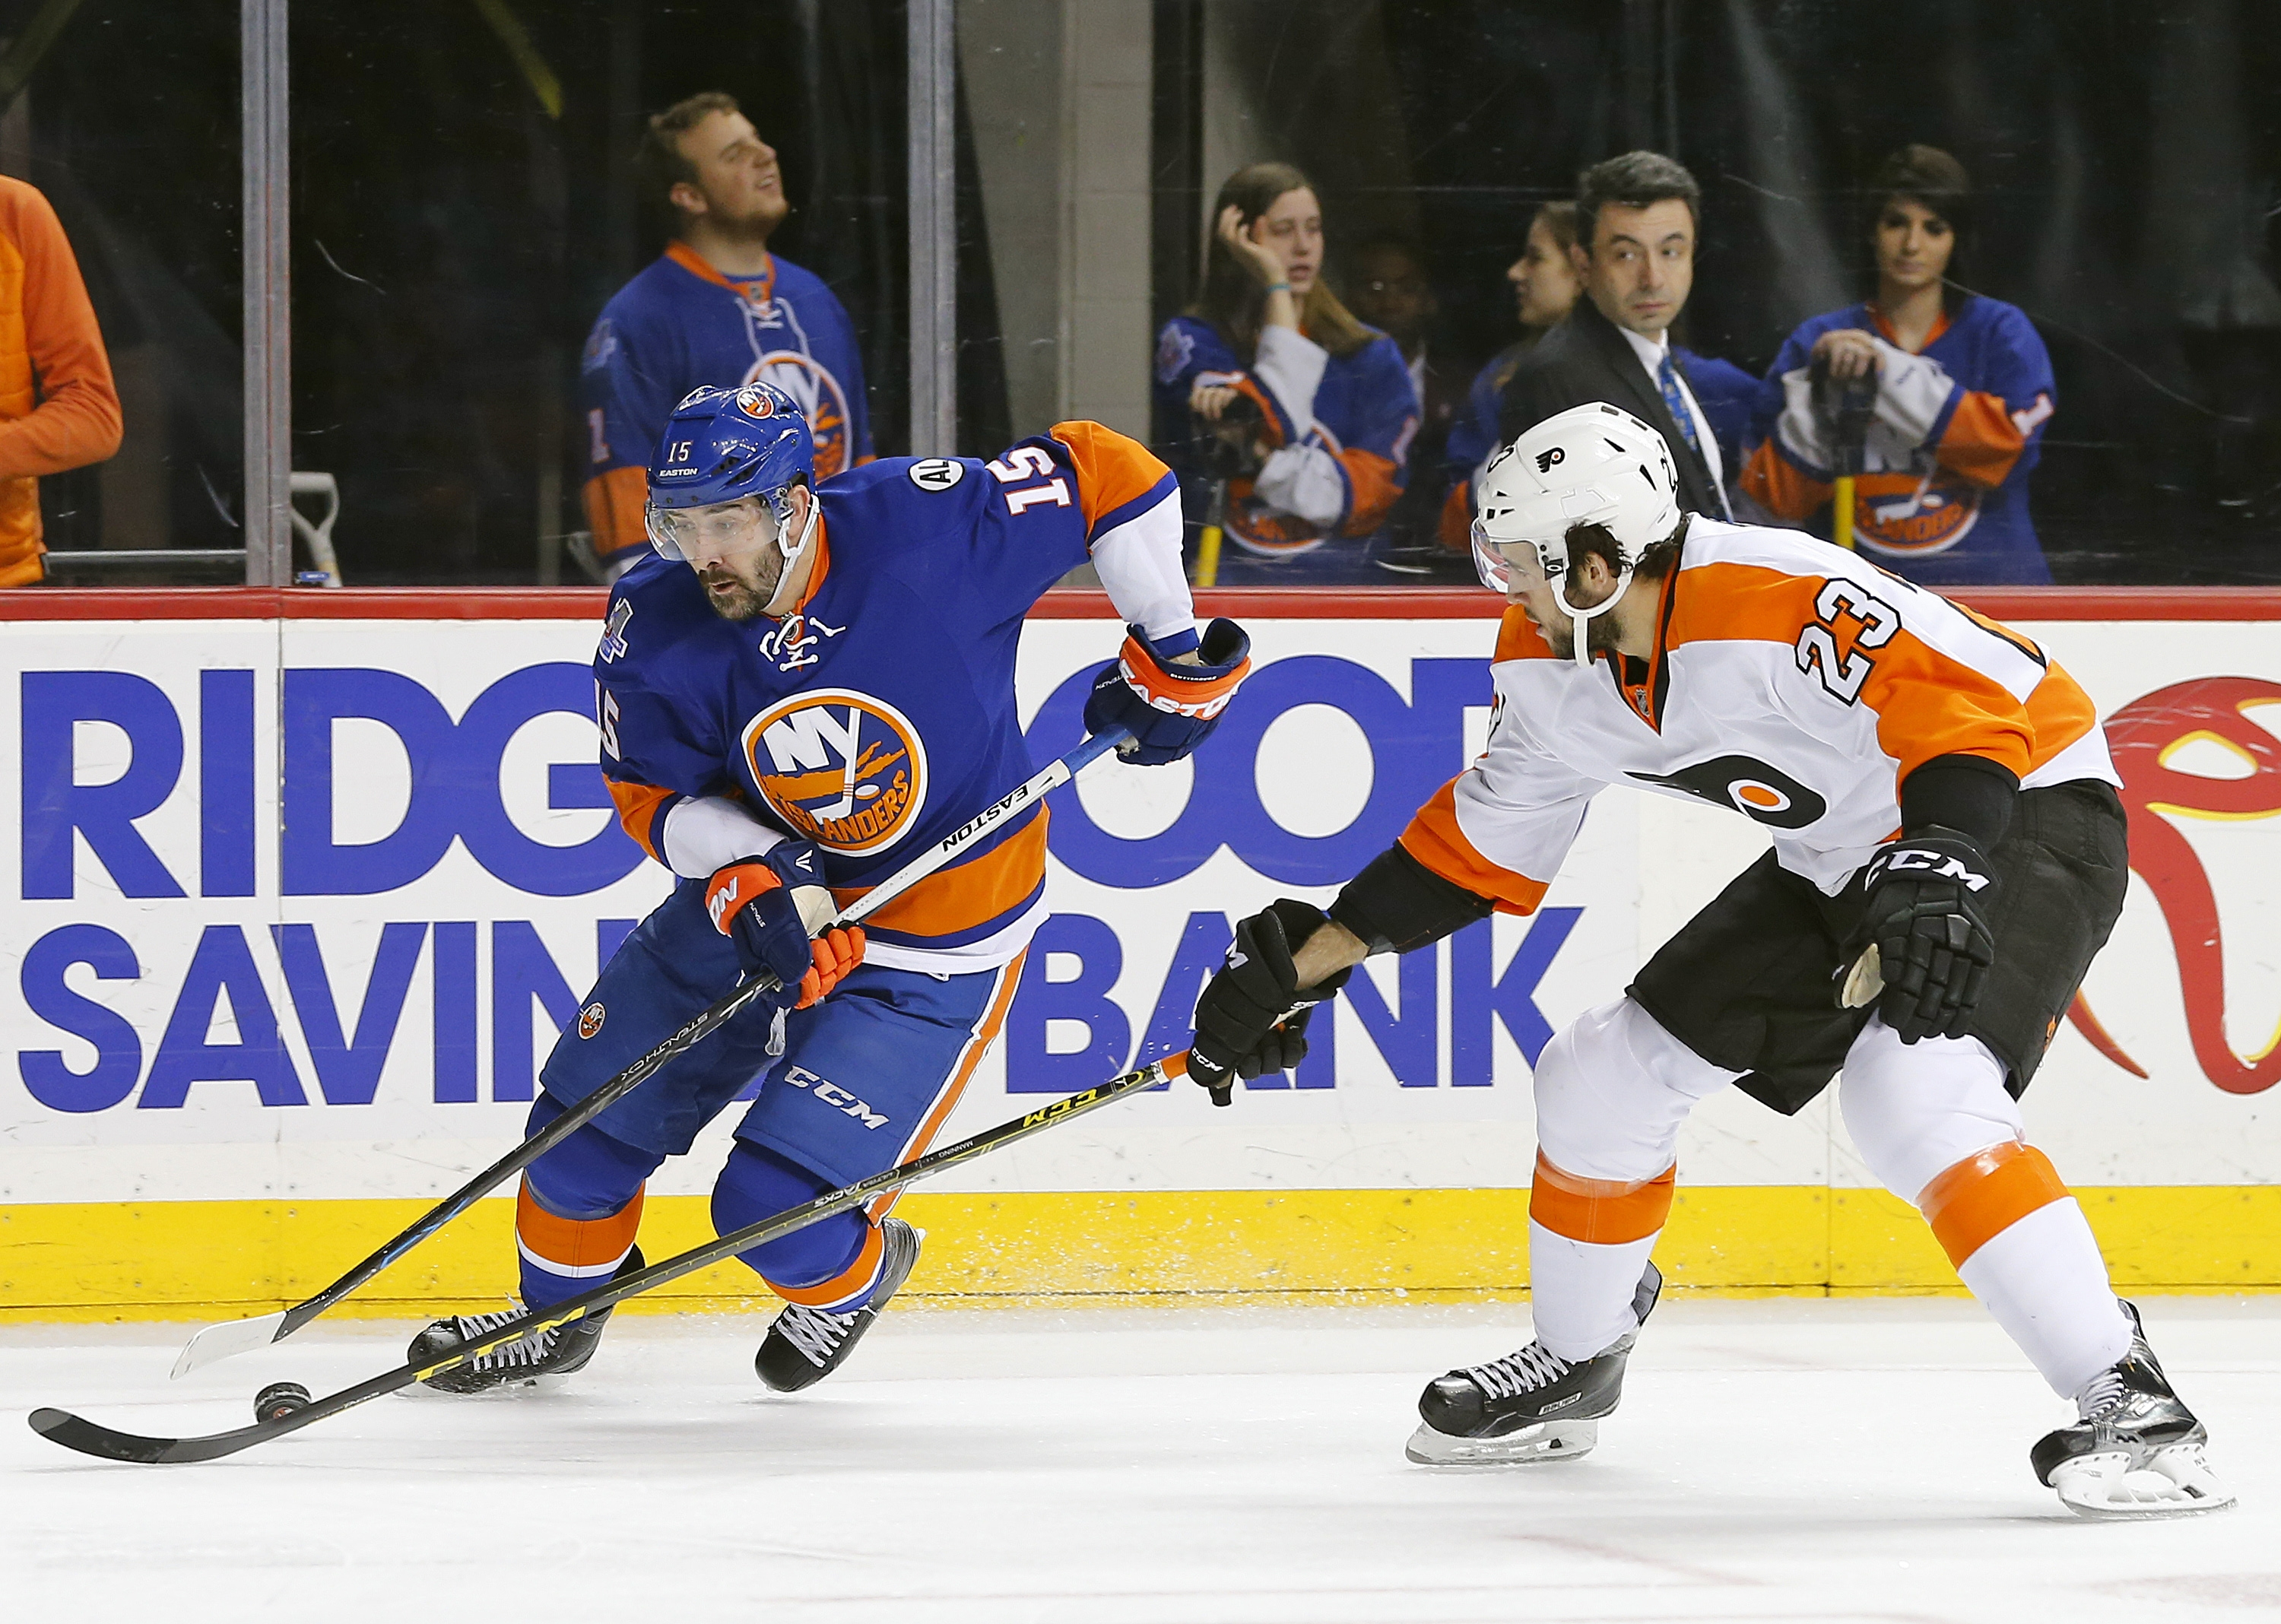 New York Islanders  forward Cal Clutterbuck (15) moves the puck away from Philadelphia Flyers defensemen Brandon Manning (23) during the second period of an NHL hockey game in New York, Sunday, April 10, 2016. (AP Photo/Rich Schultz)